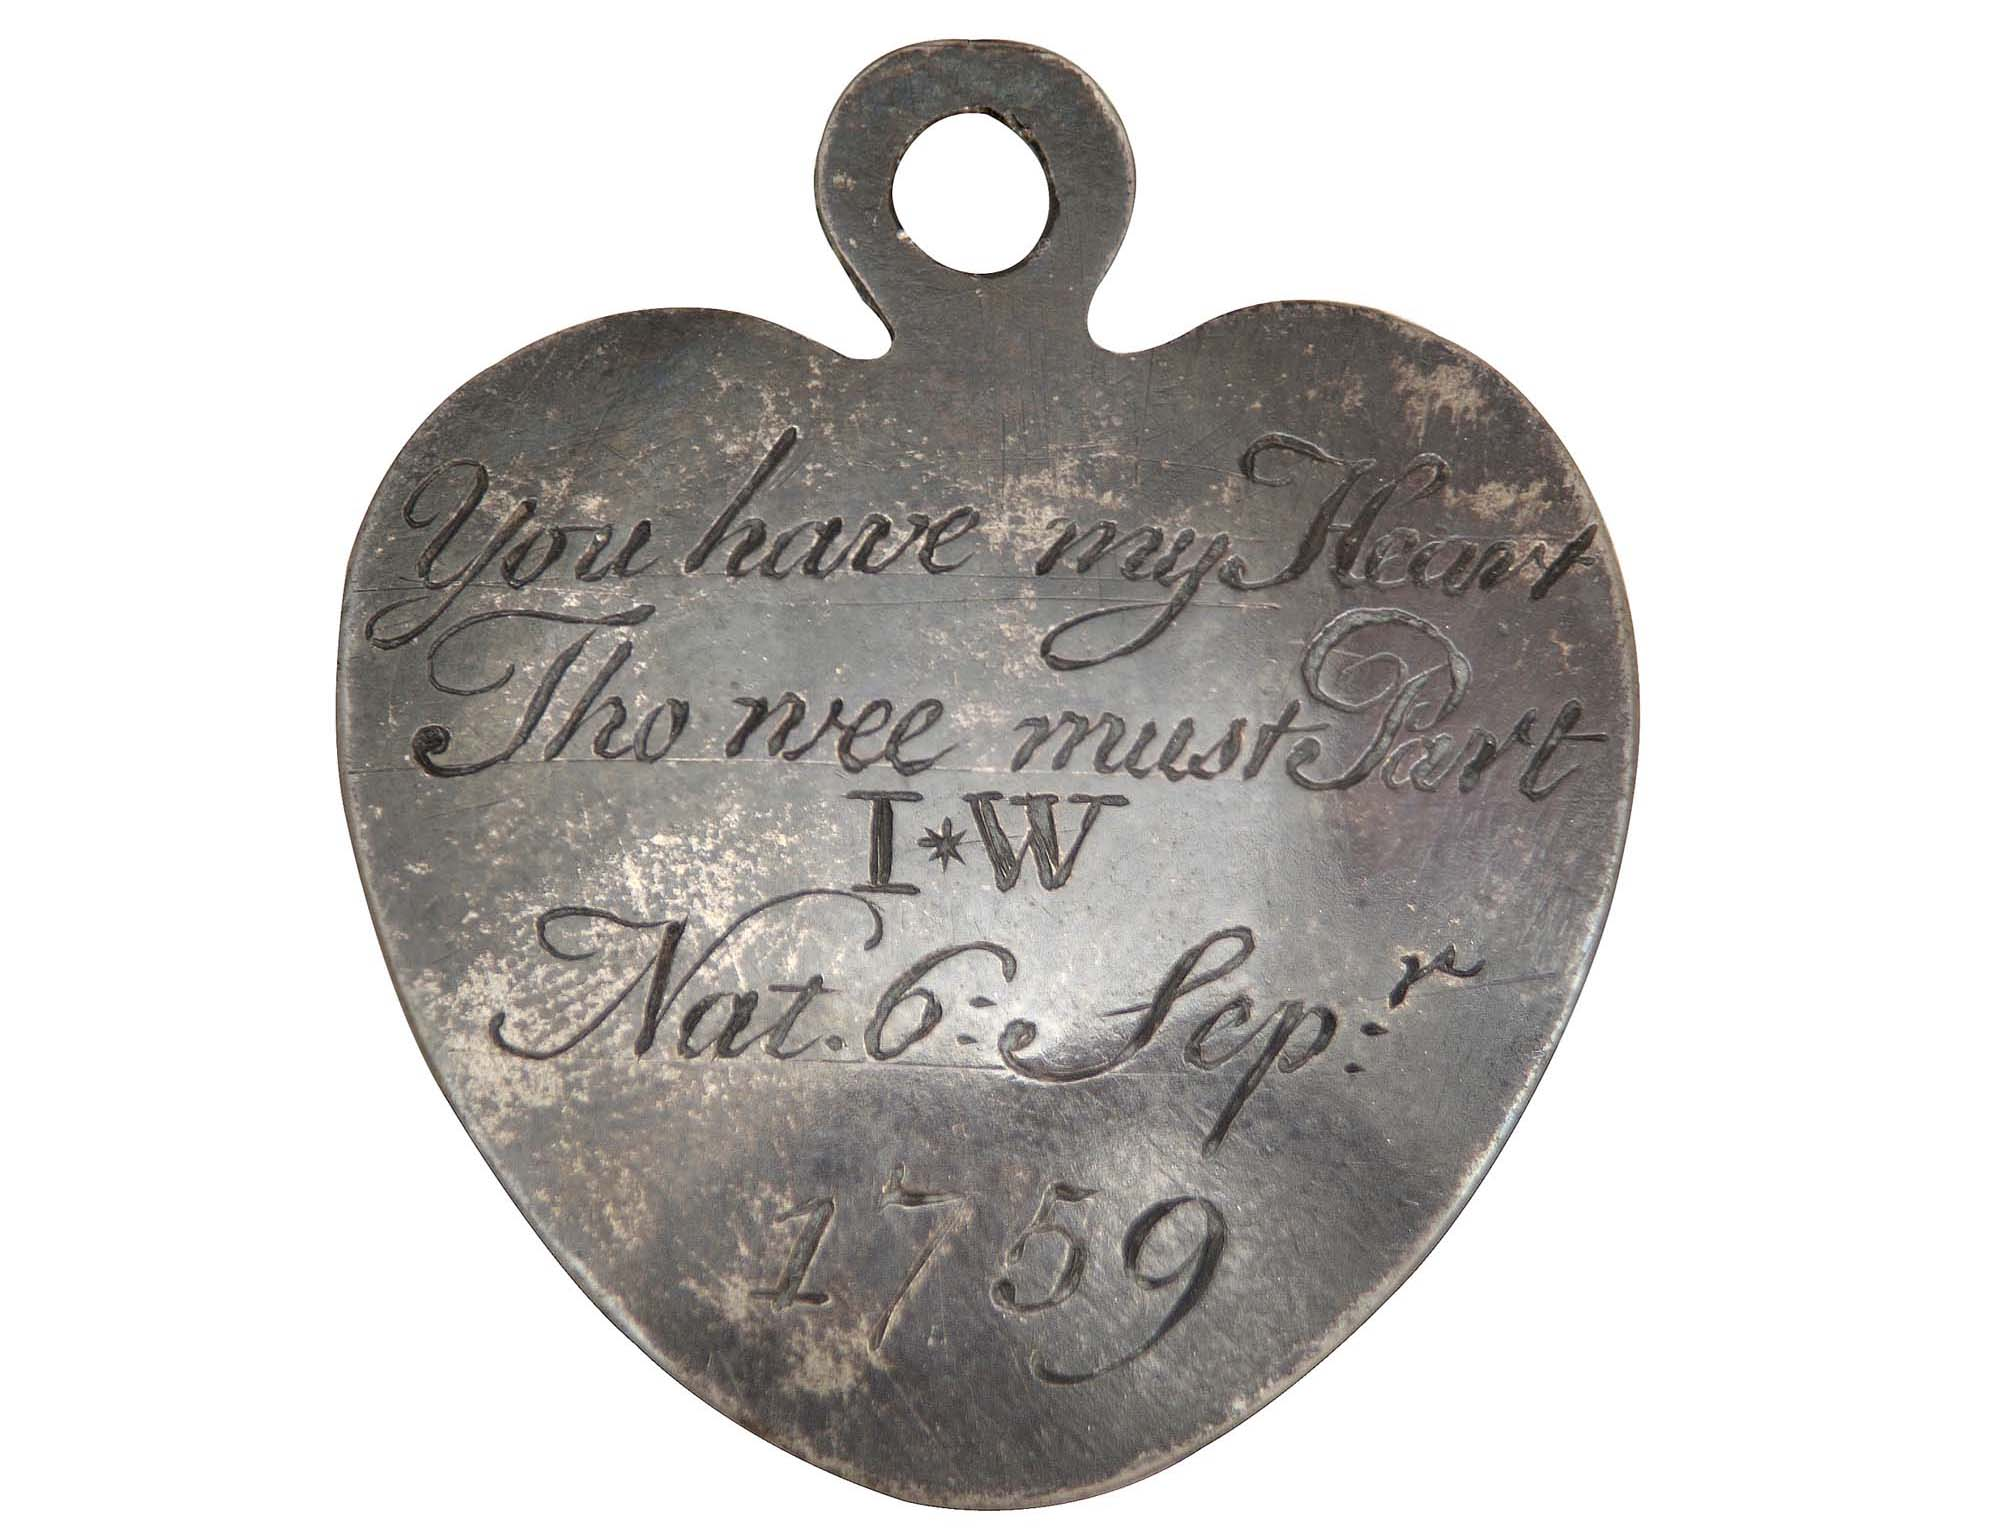 a photo of a heart shaped token with an inscription on it